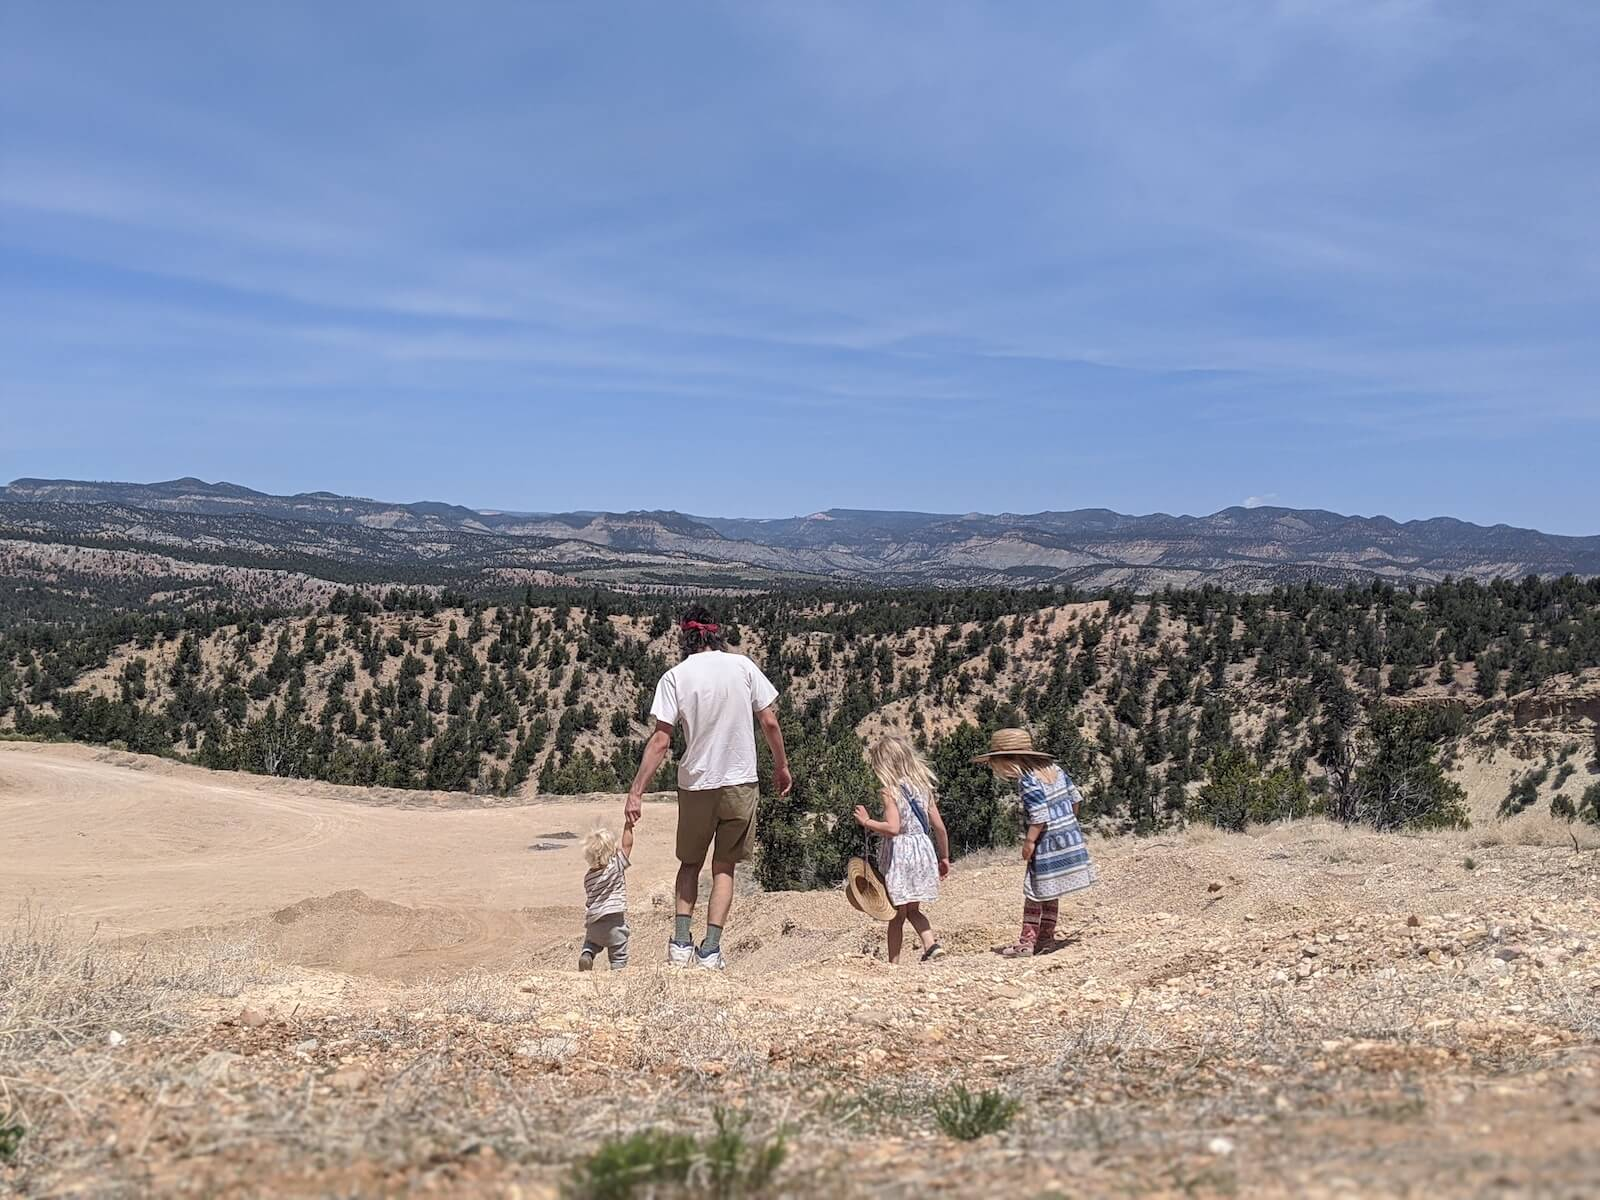 Russ Mortland RN and three kids hiking on dirt trail with trees in the background travel nursing in an RV